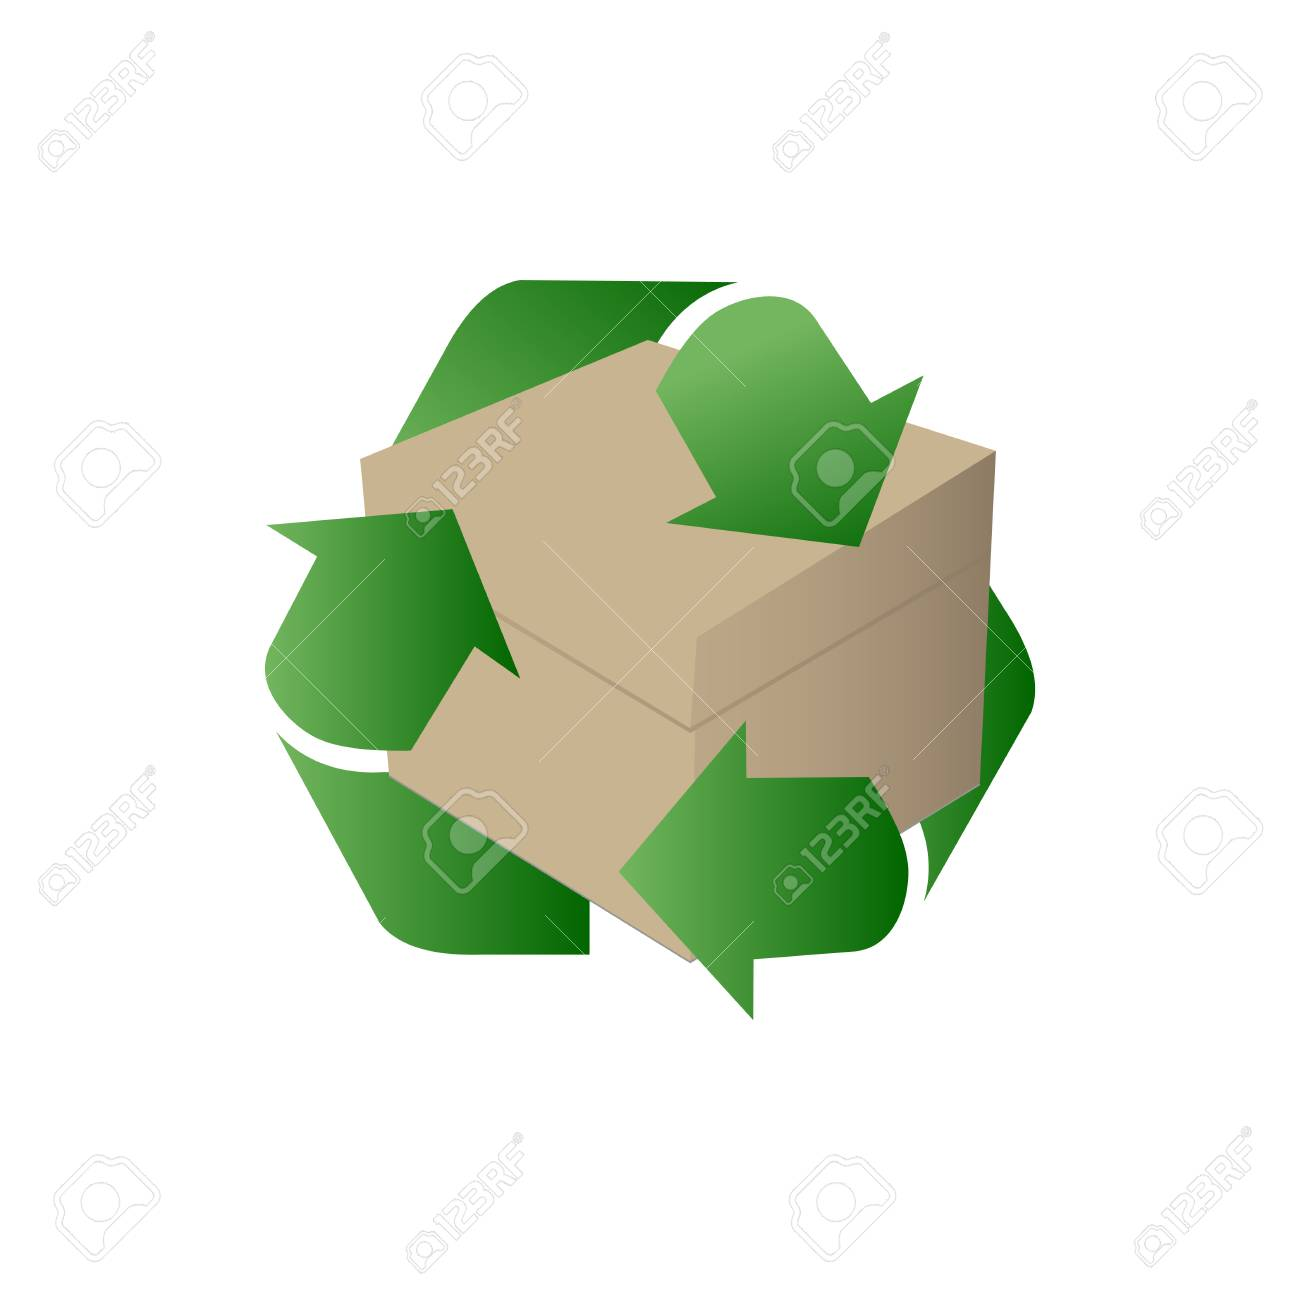 Blank cardboard box for Recycle box Vector. - 87679604